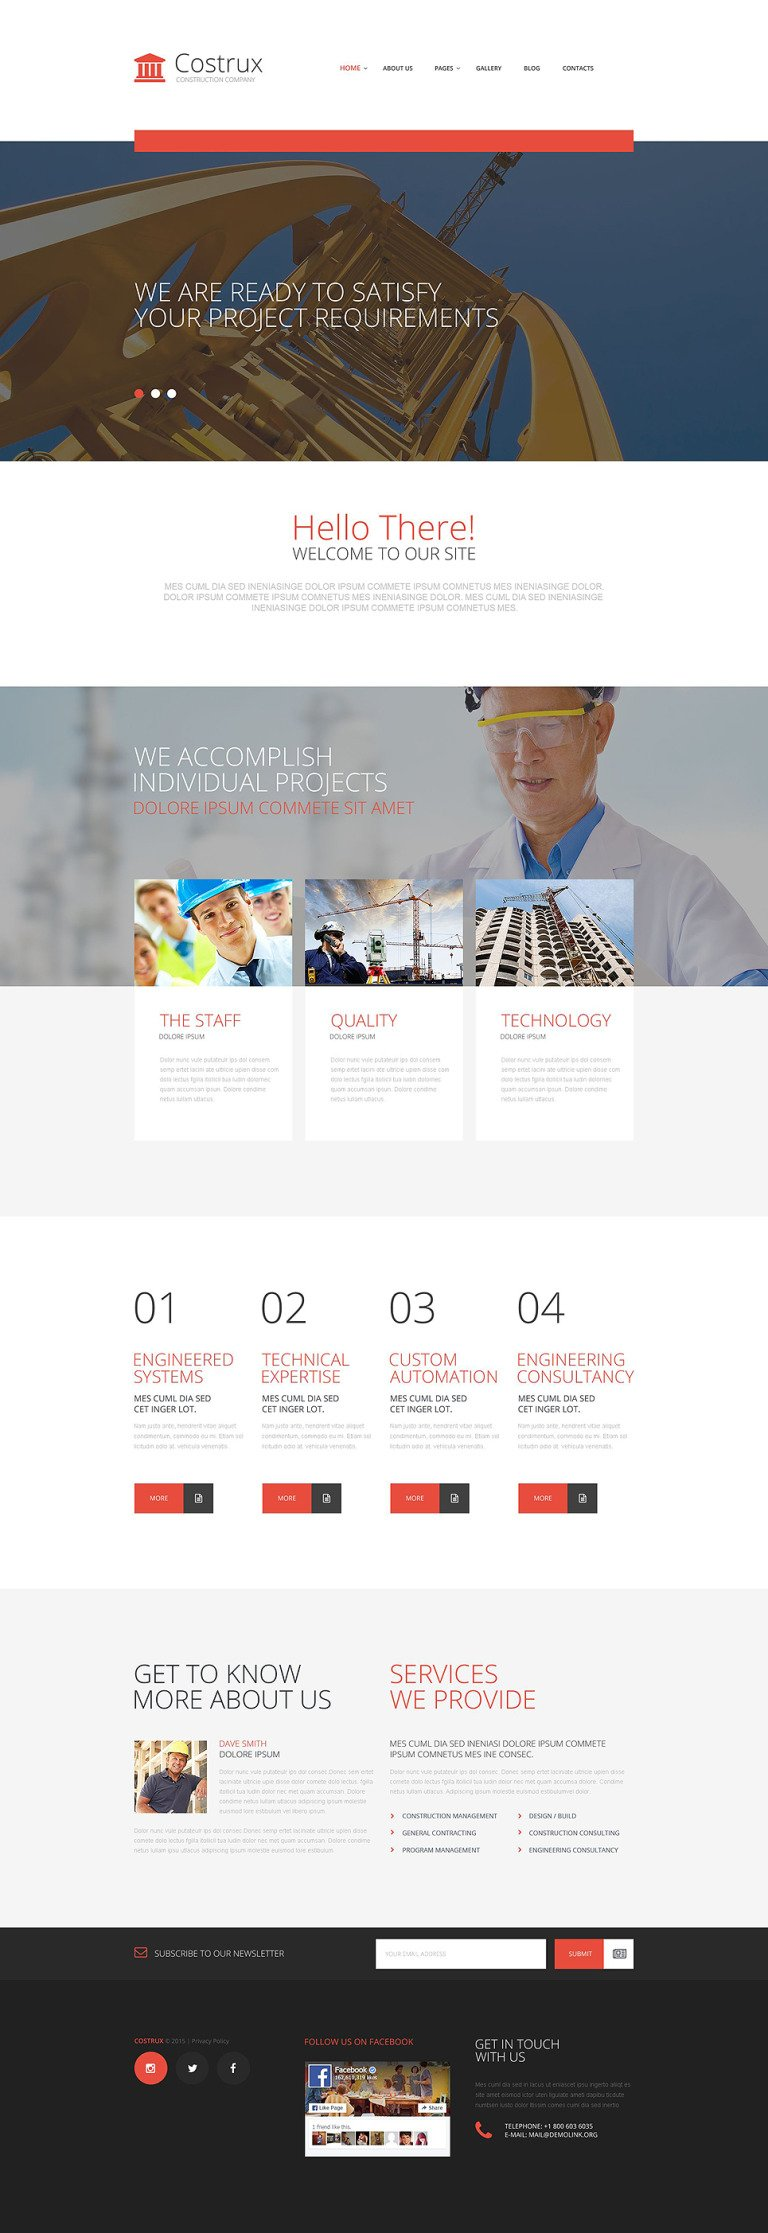 Costrux Joomla Template New Screenshots BIG